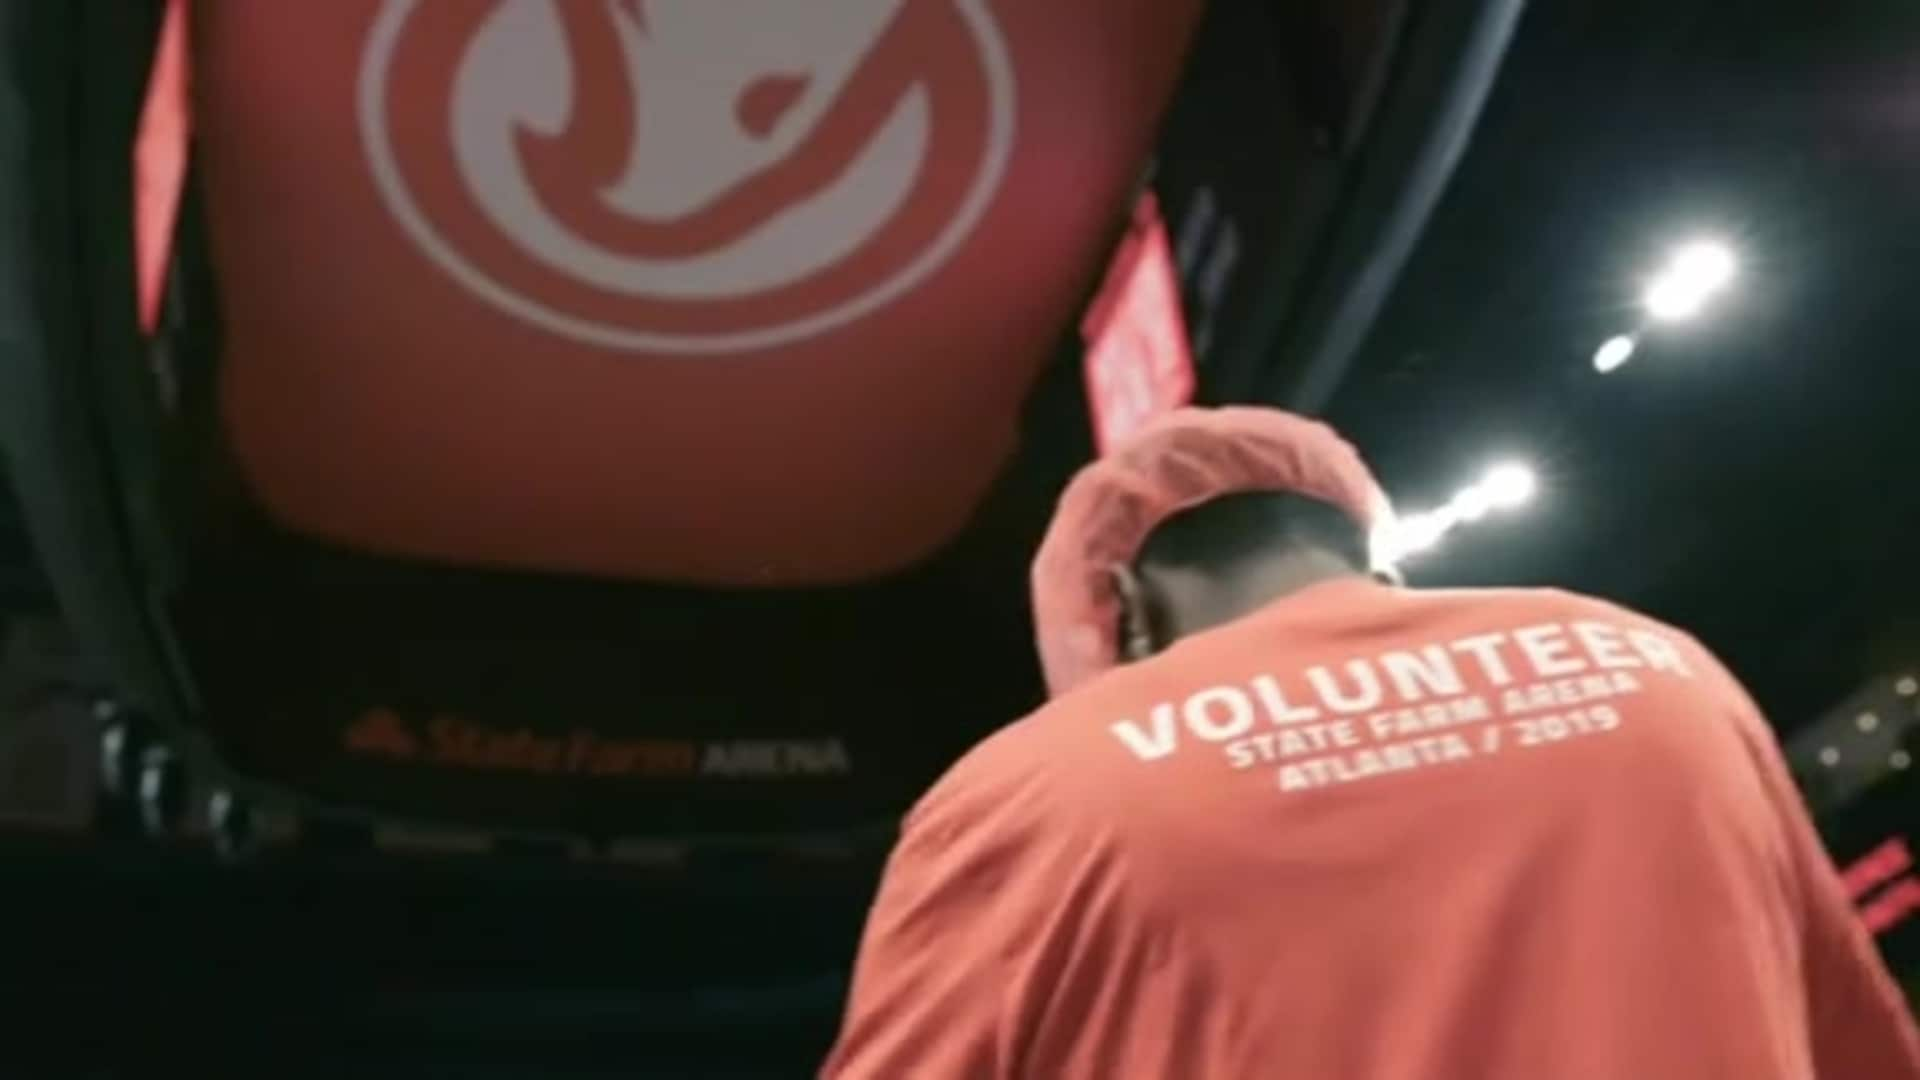 Atlanta Hawks Partner with State Farm to Pack One Million Meals